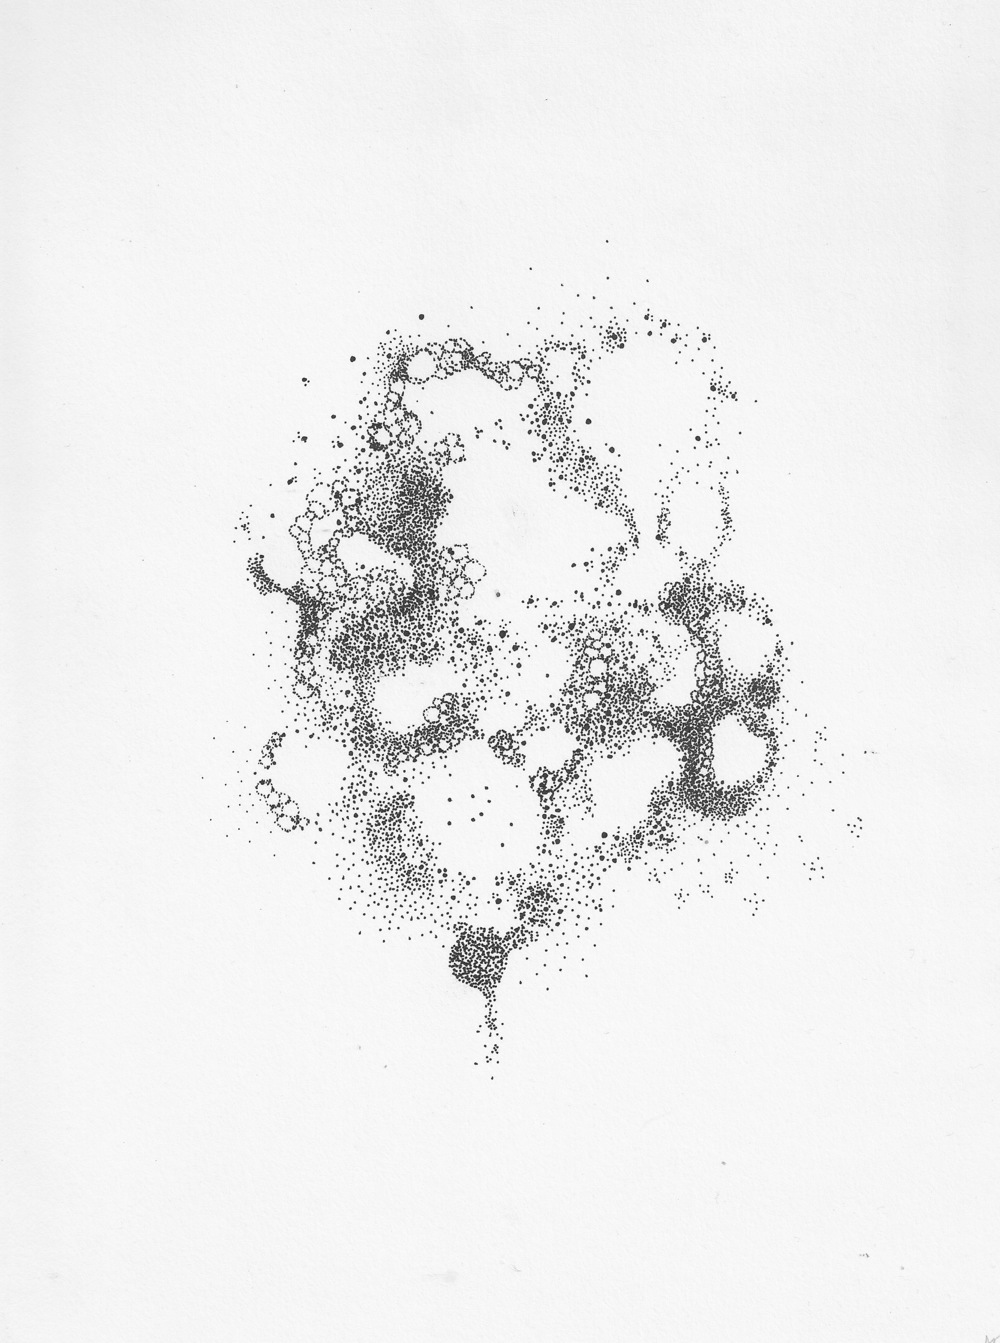 untitled (dot3), ink on paper, 8 x 10 in.